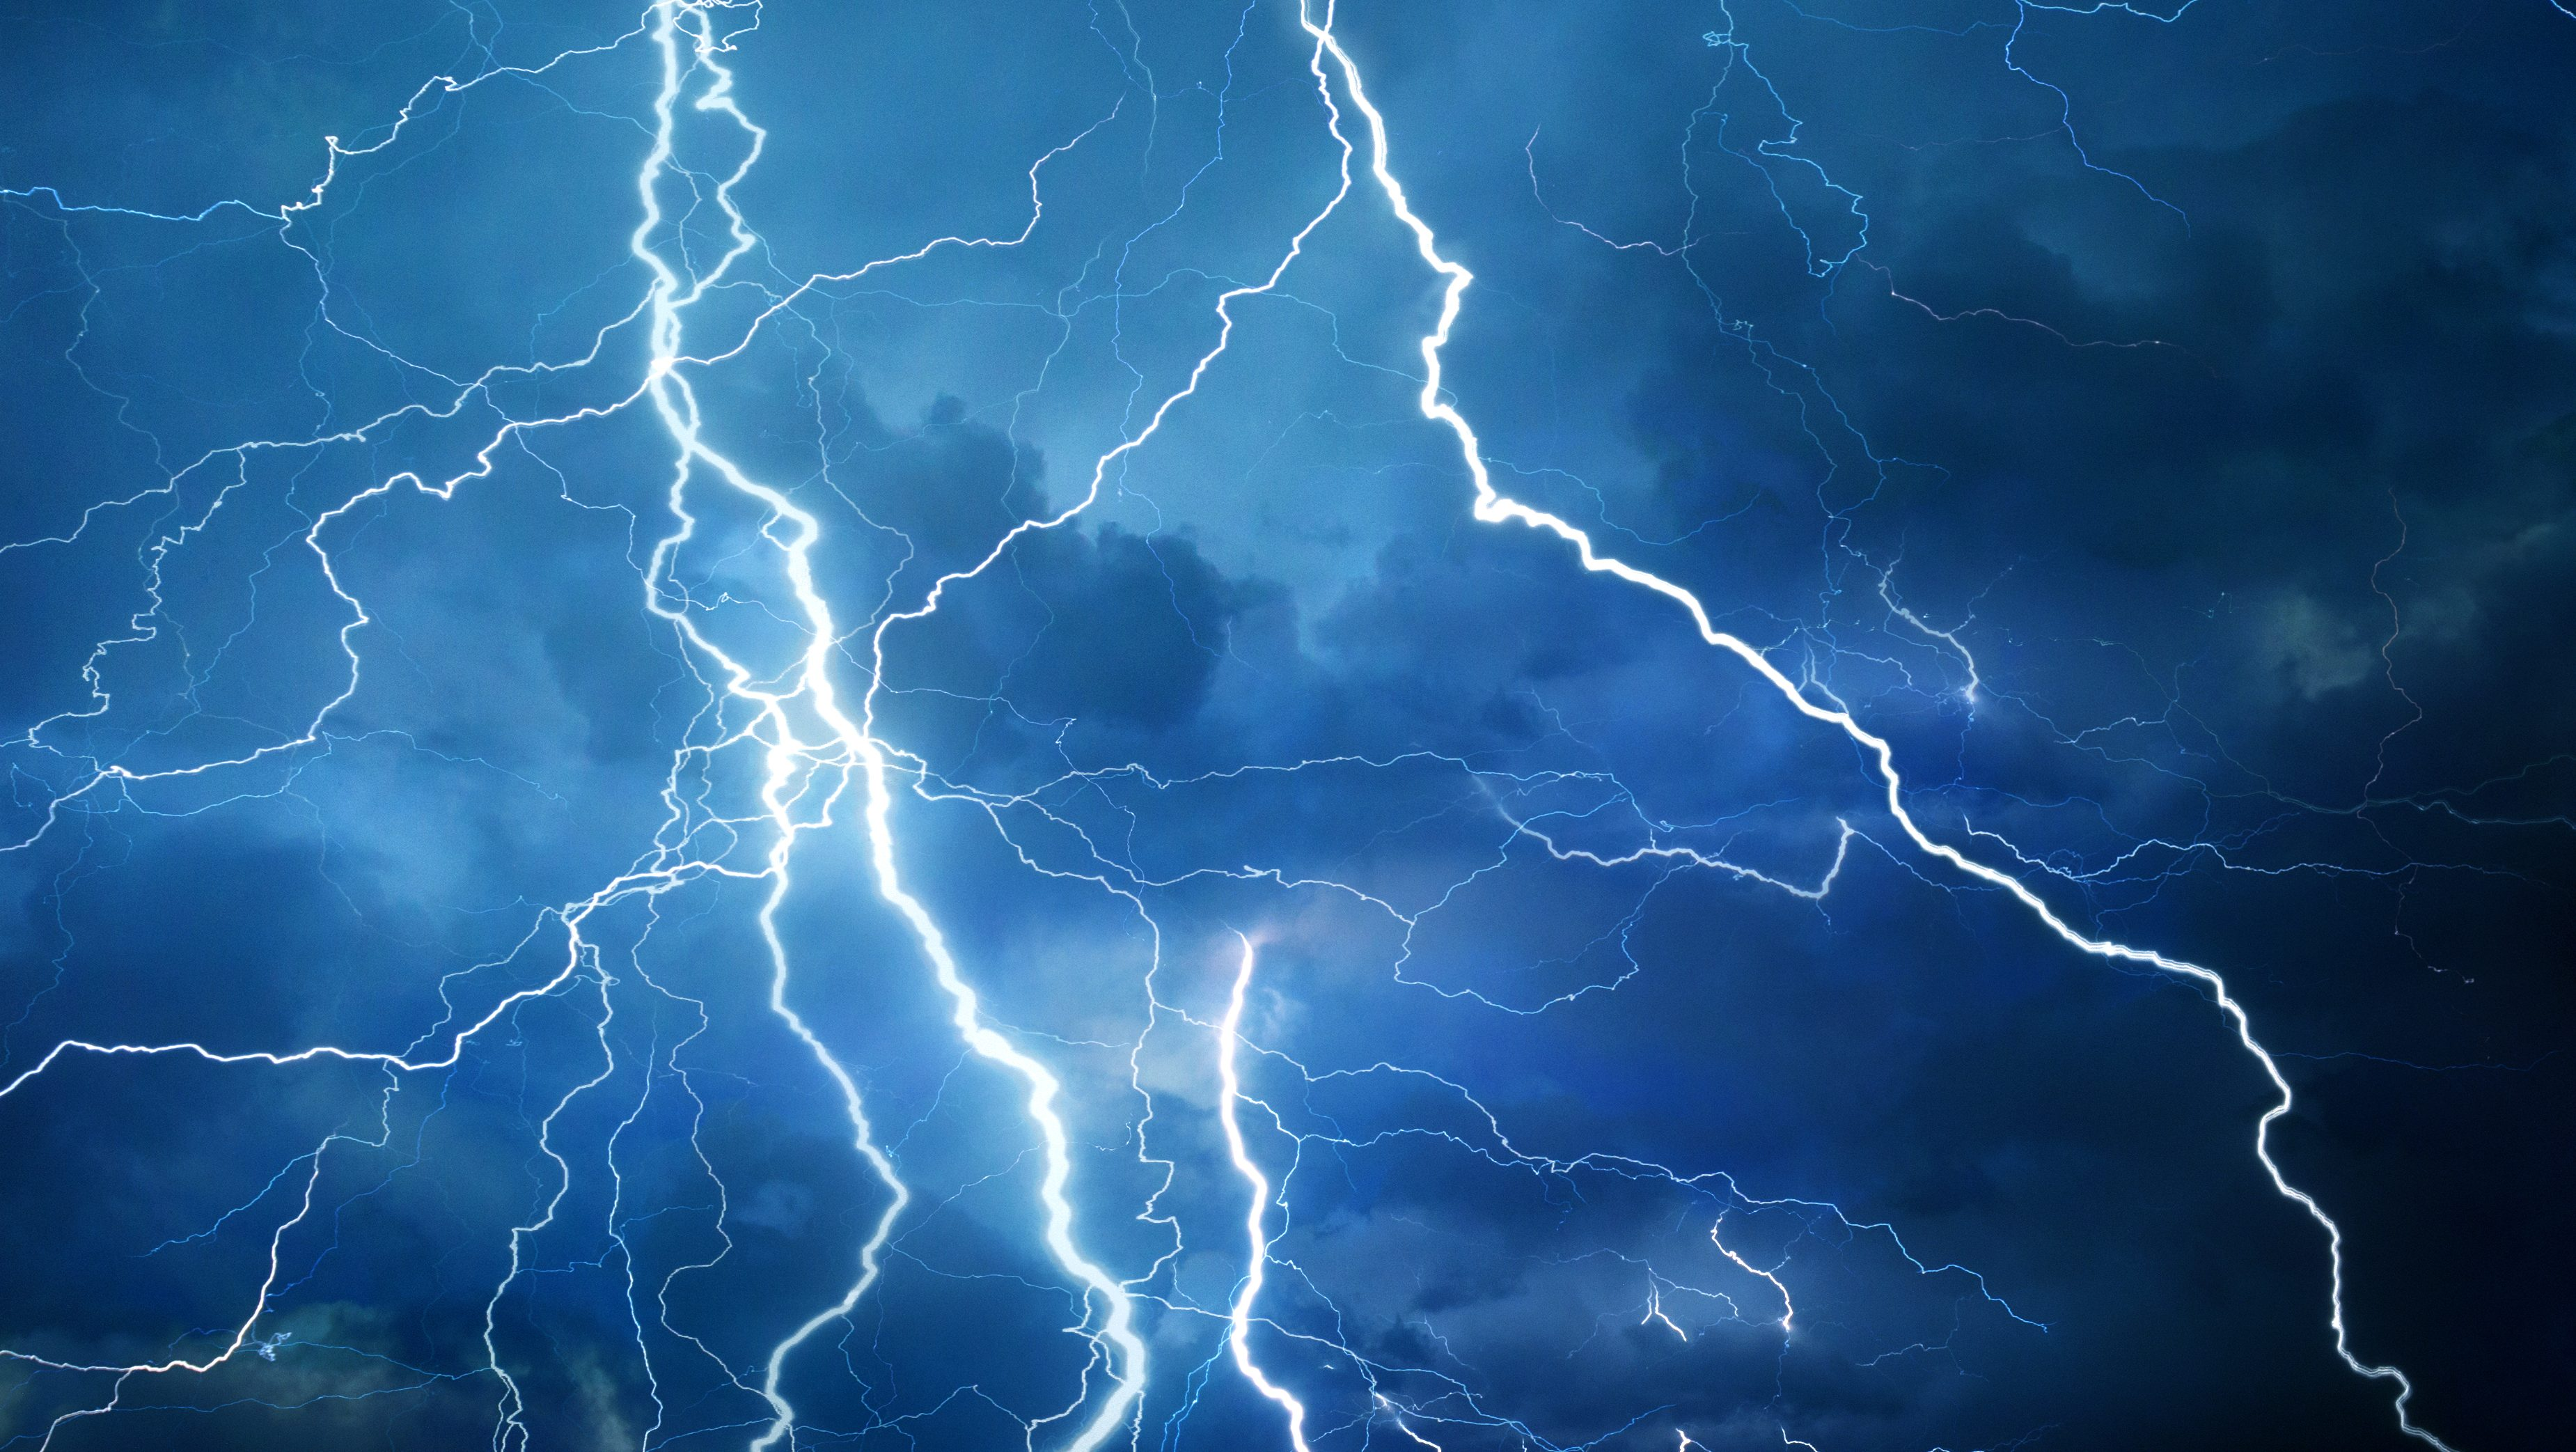 lightning, facts about the Bible